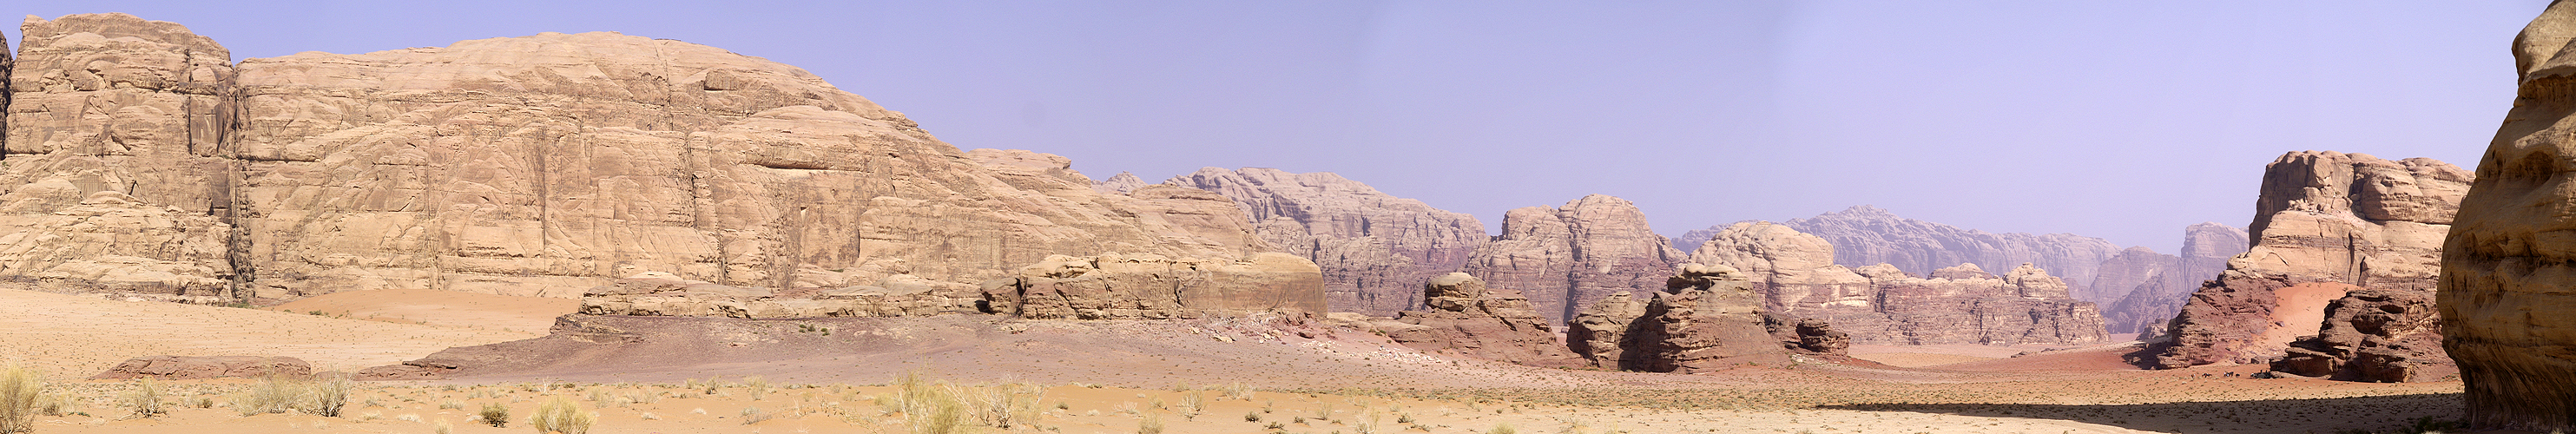 Photo panoramique du Wadi Rum